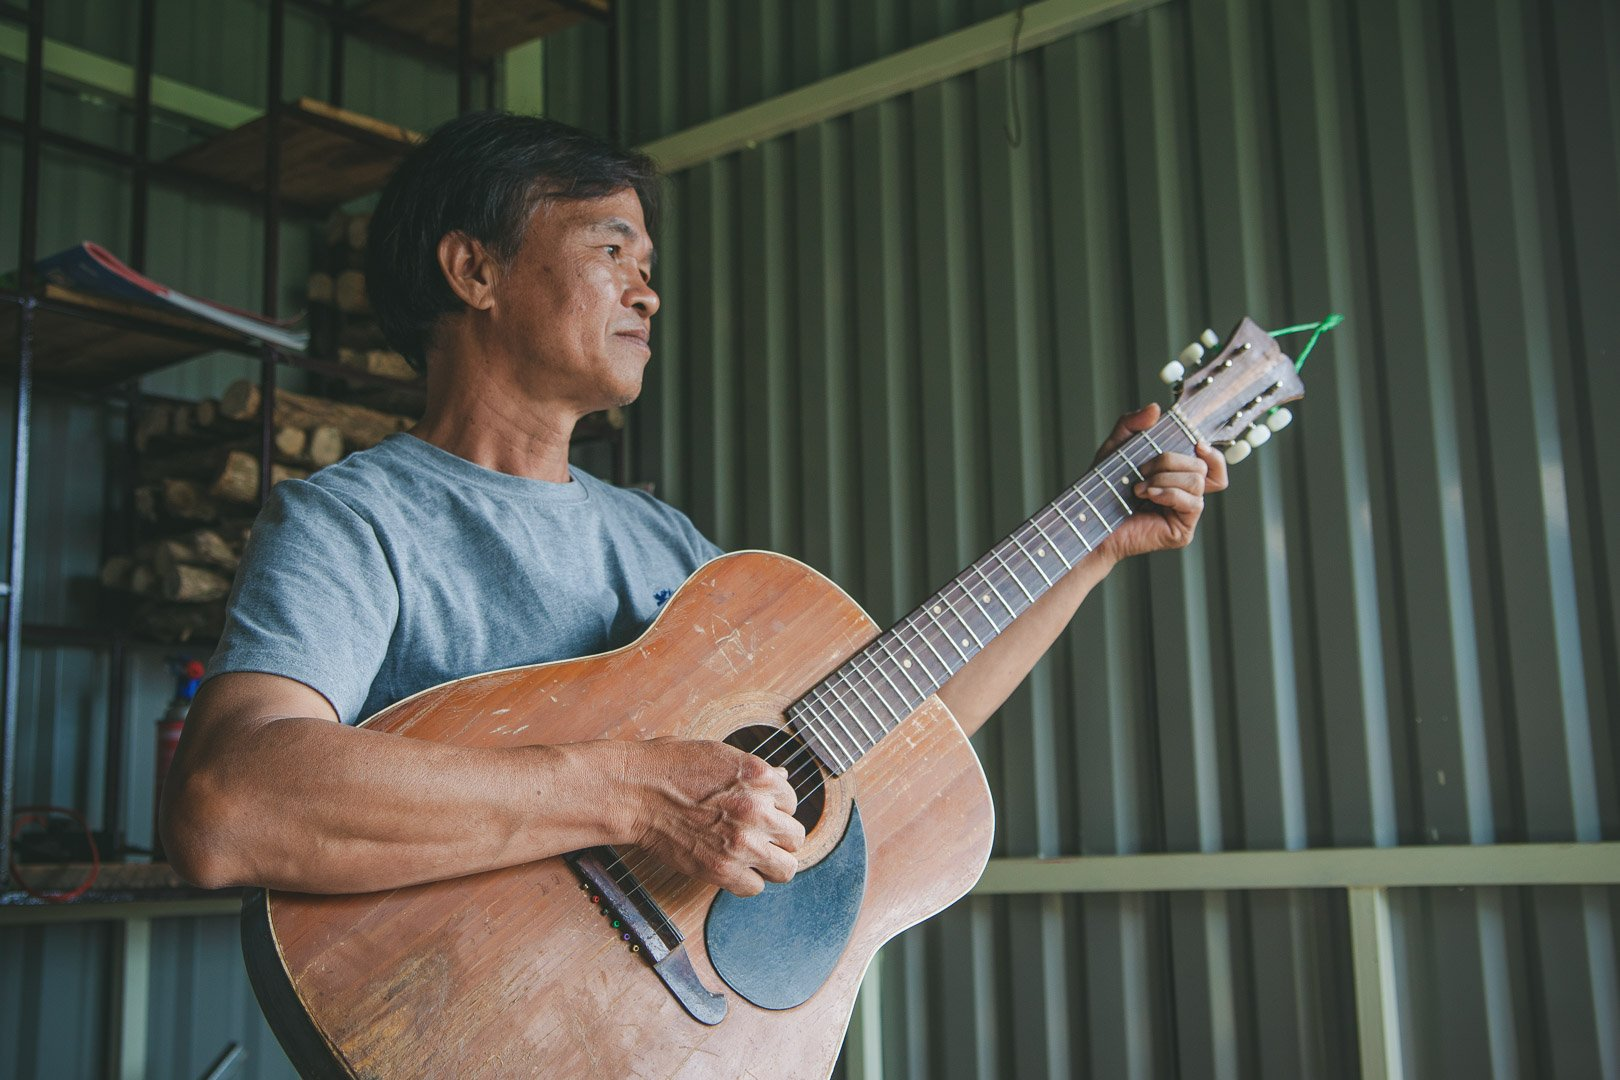 The coffee farmer, holding a guitar, sings us a song to end our tour